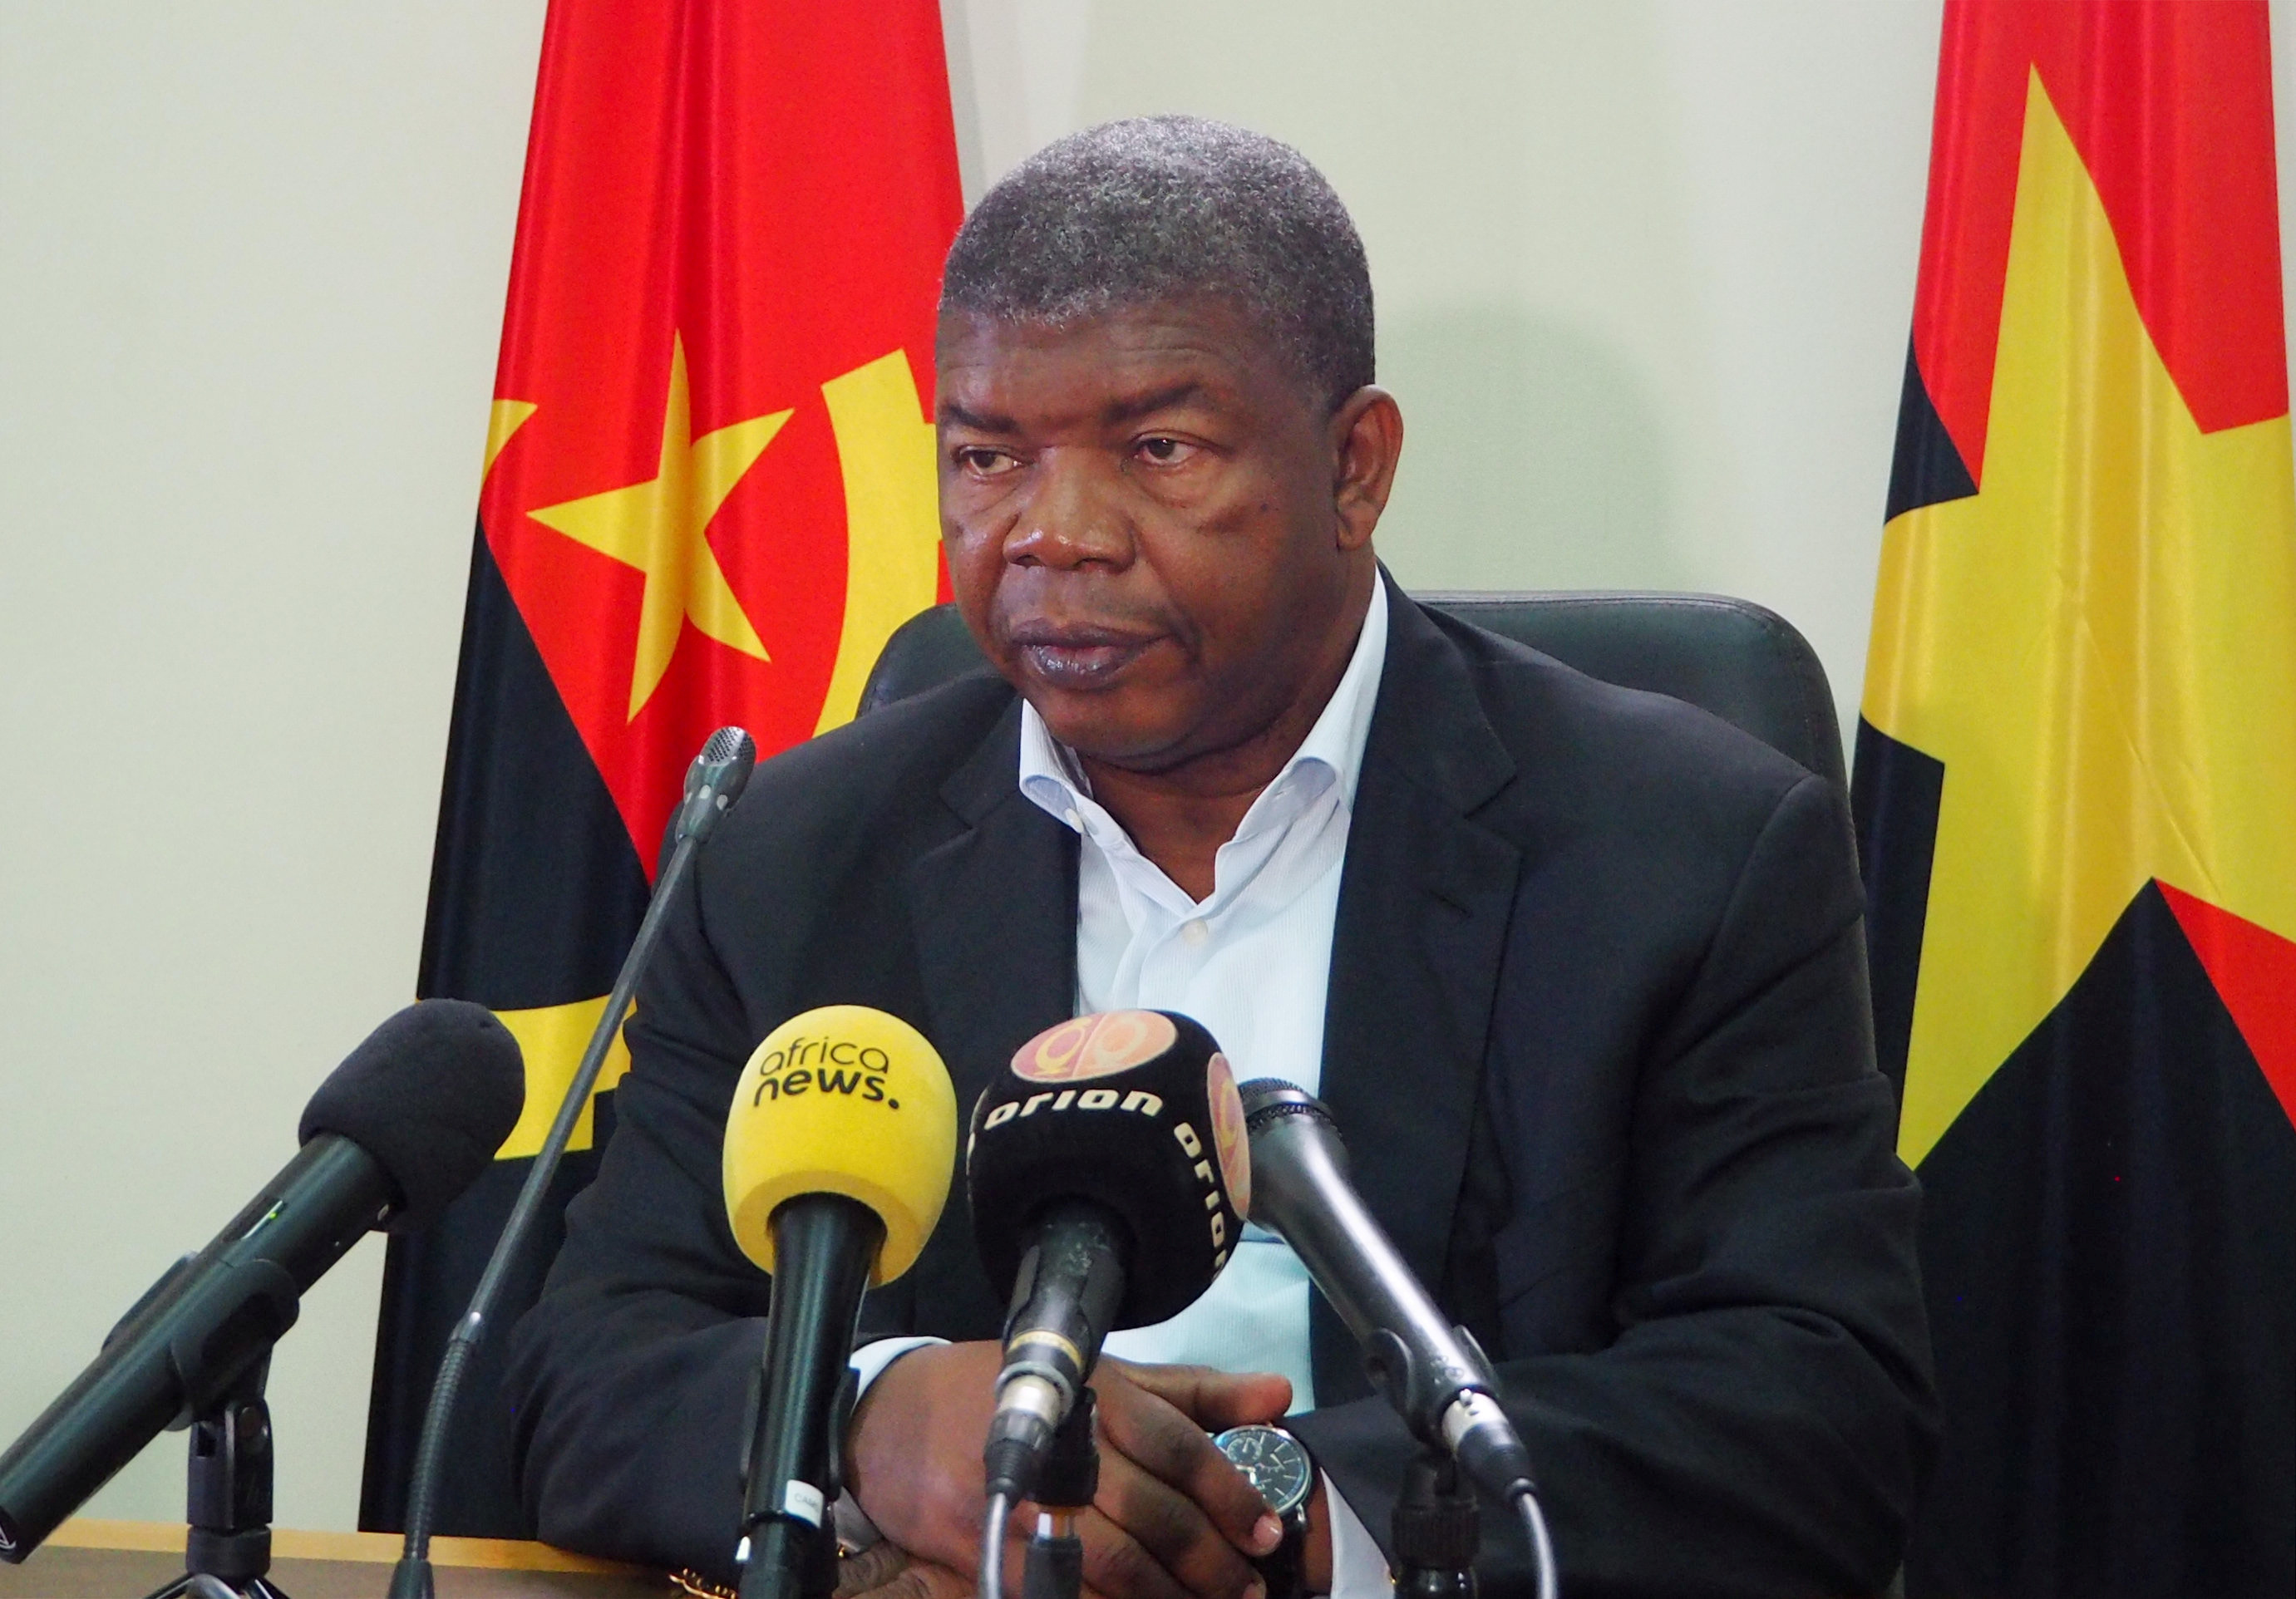 Joao Lourenco, presidential candidate for the ruling MPLA party, speaks at a news conference in Luanda, Angola, Aug. 22, 2017.